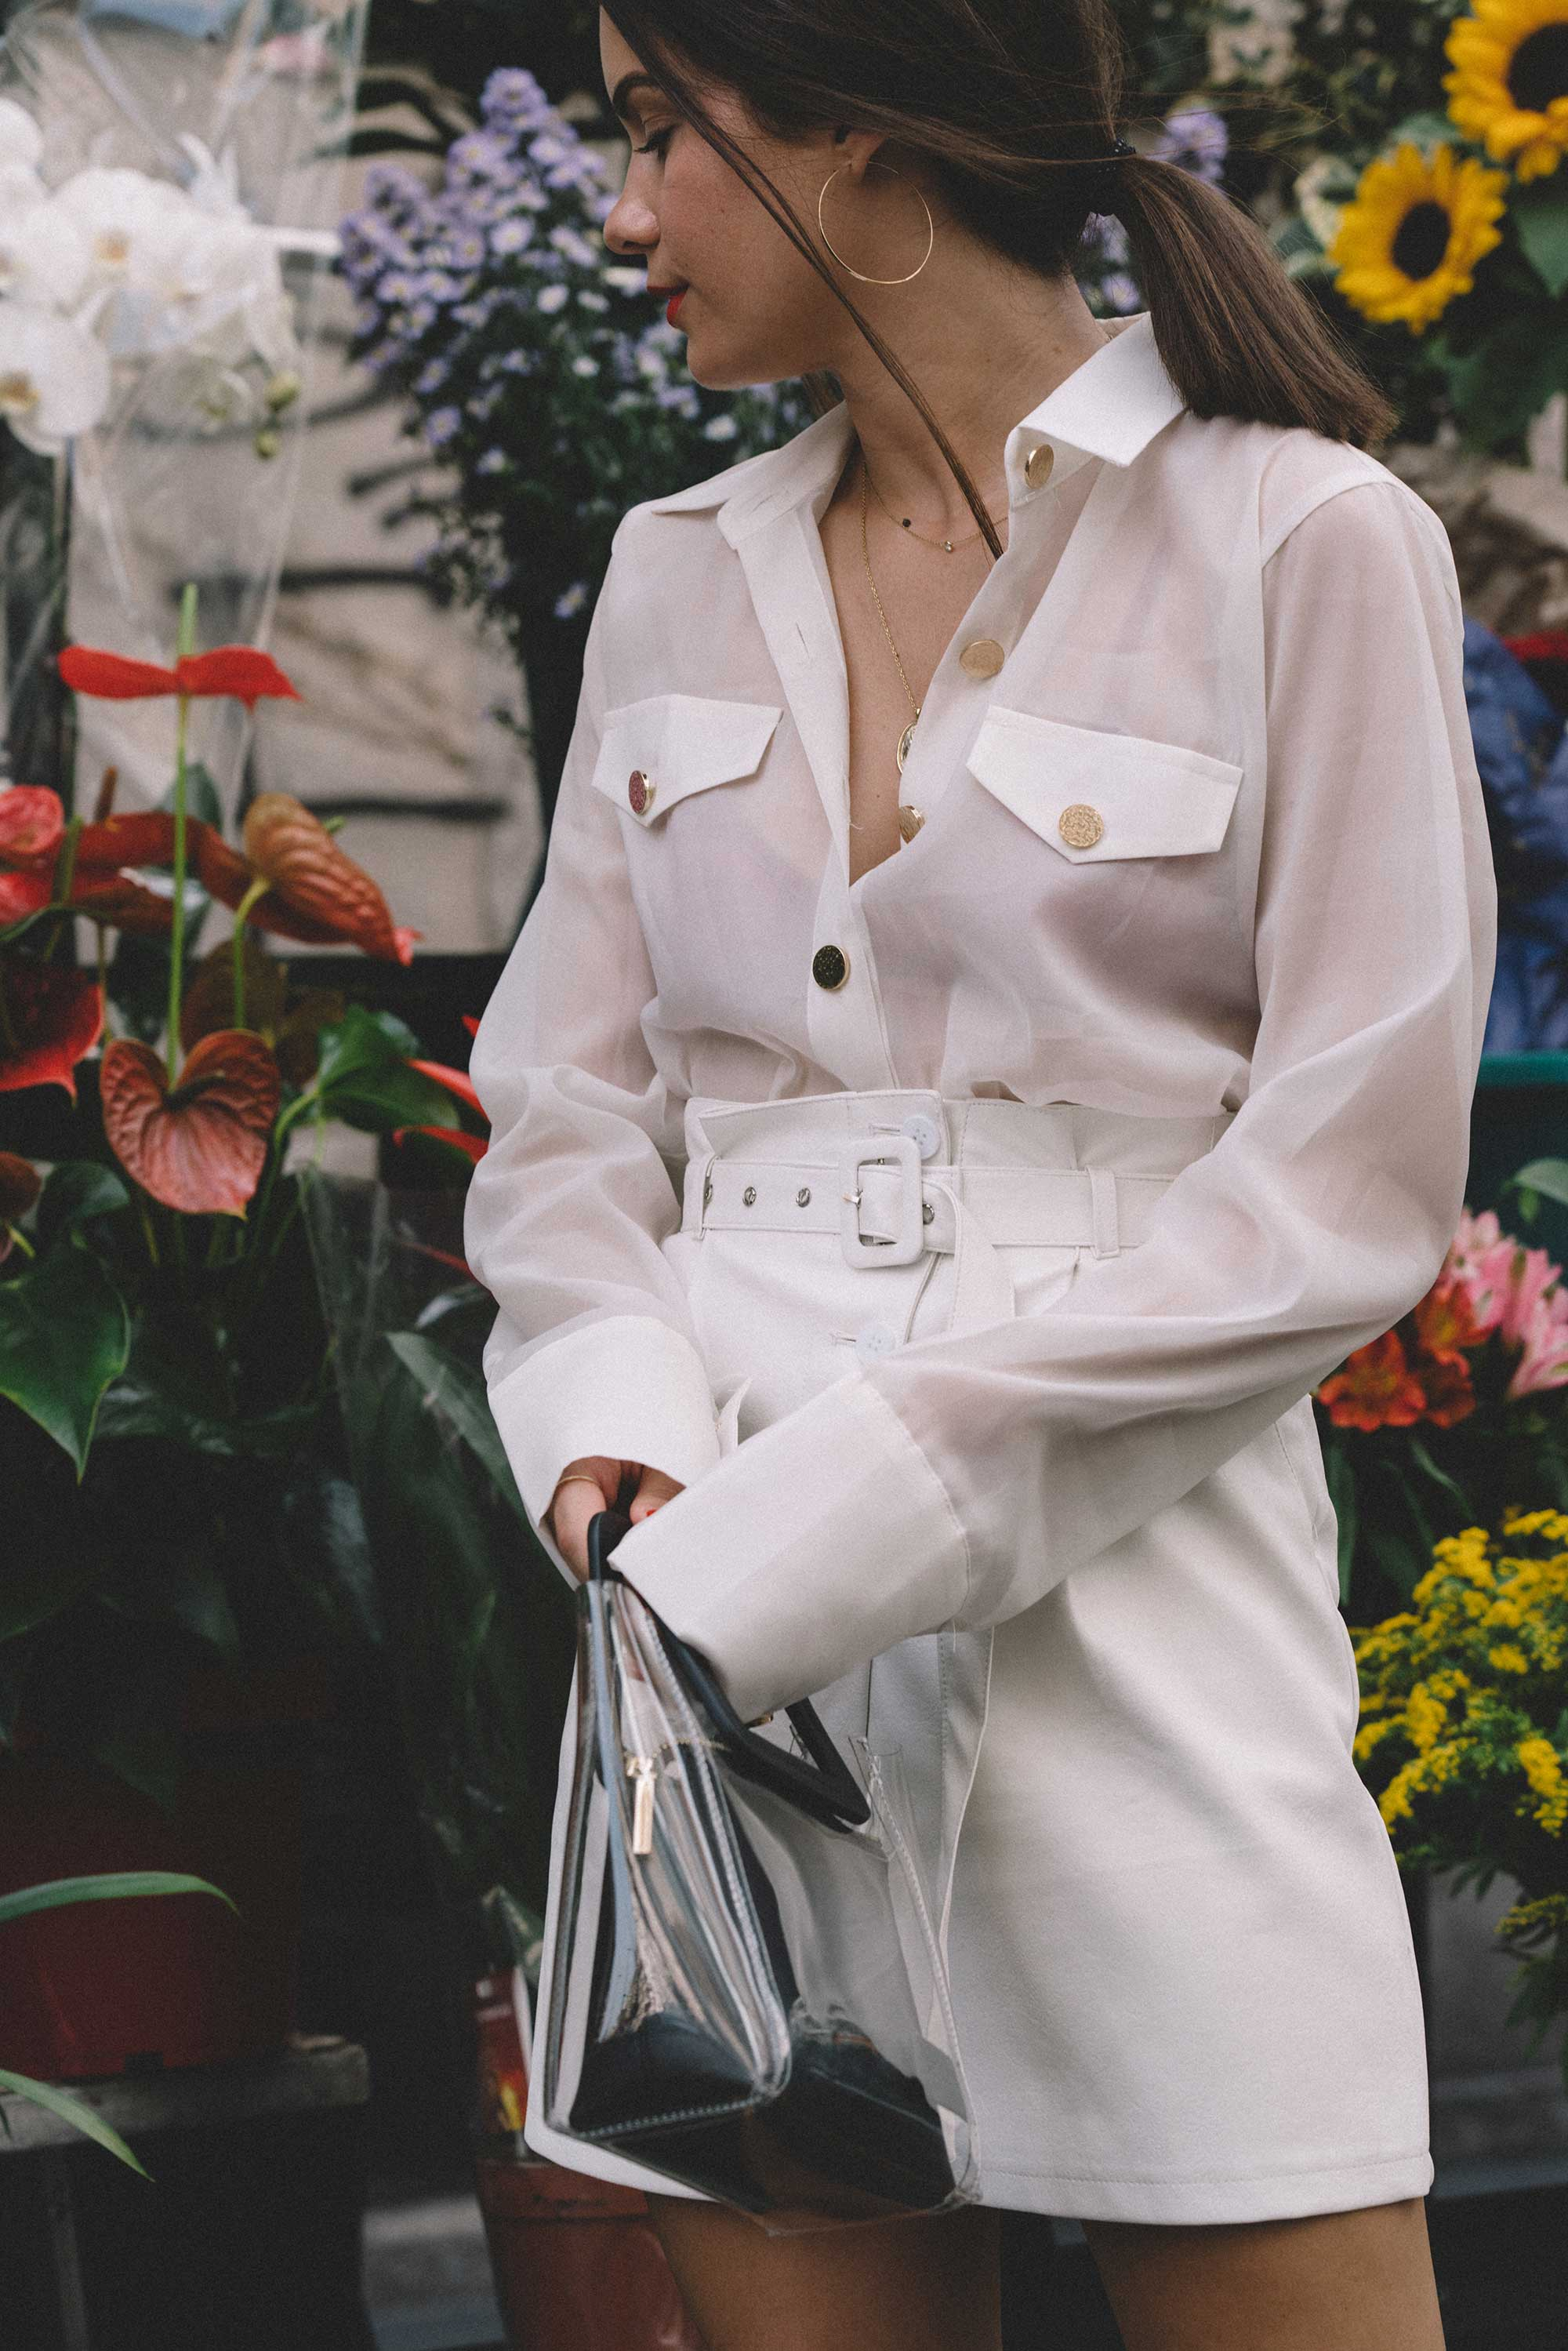 Sheer picket blouse, white leather skirt with belt, STAUD clear and black shirley mini PVC and leather tote, milan outfit10.jpg